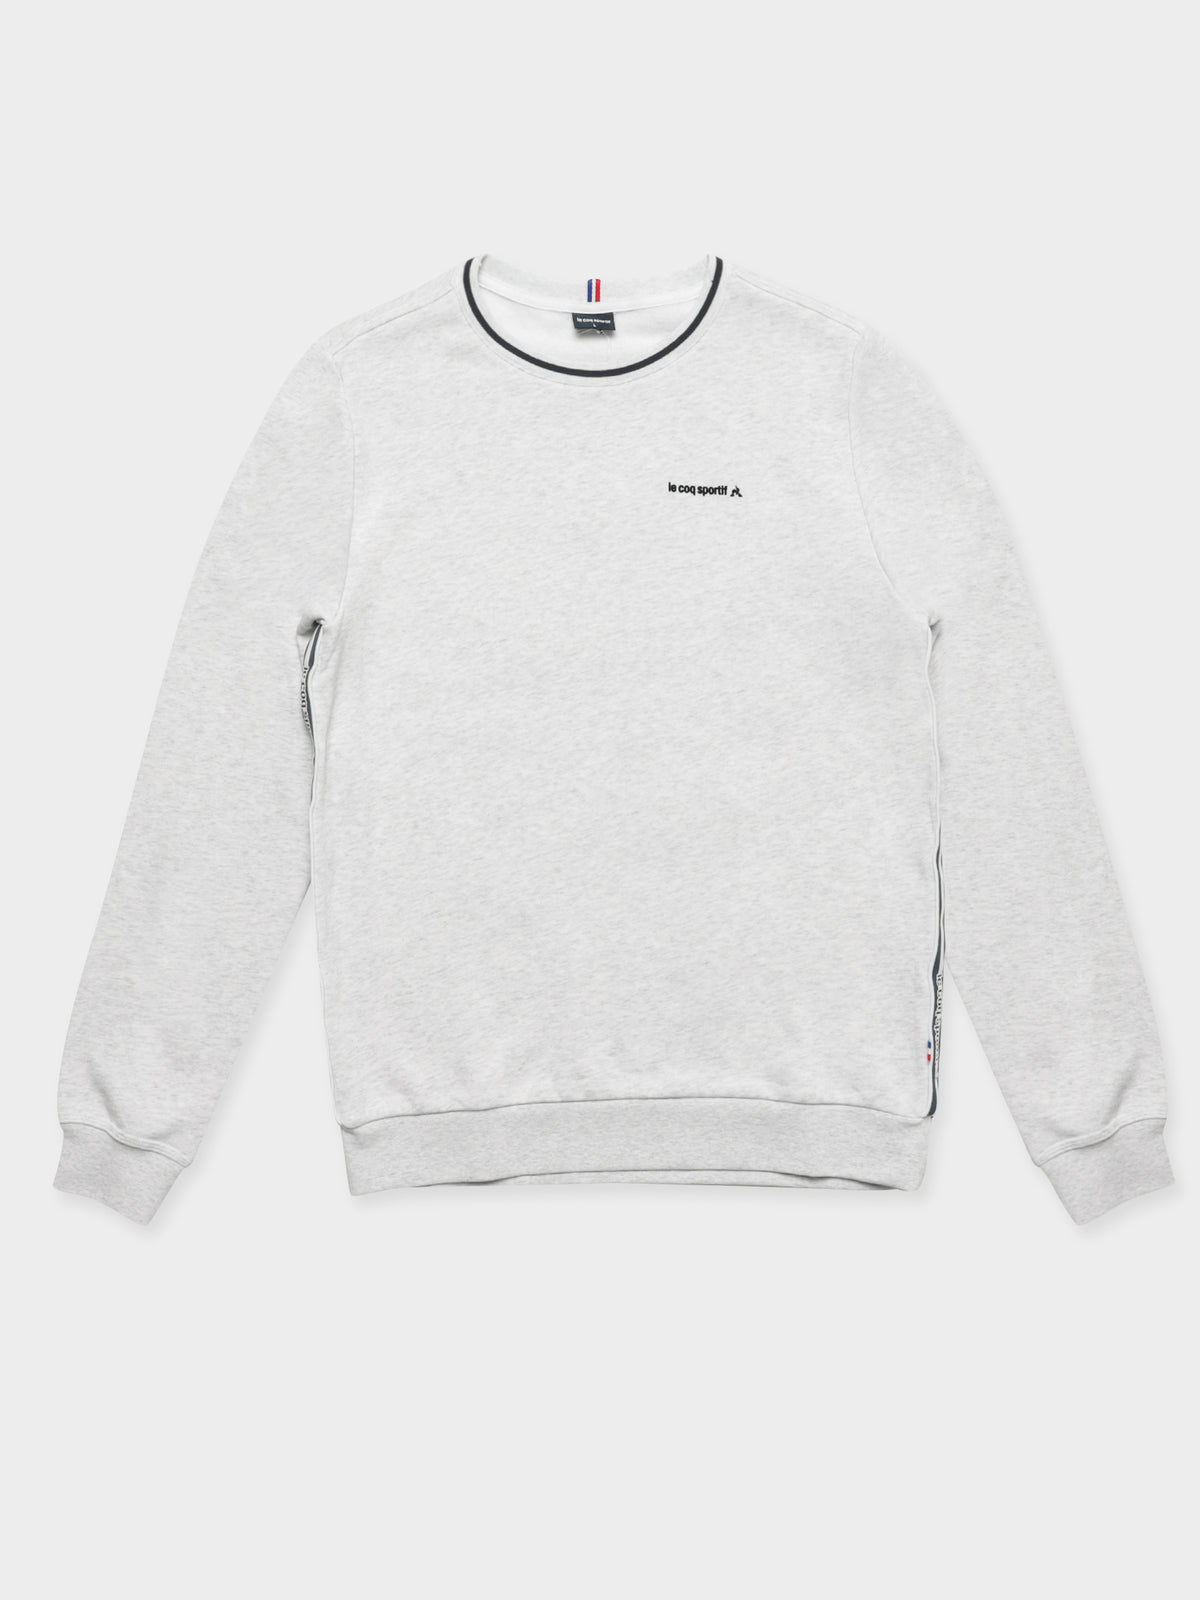 Maison Pullover Sweat in Snow Marle